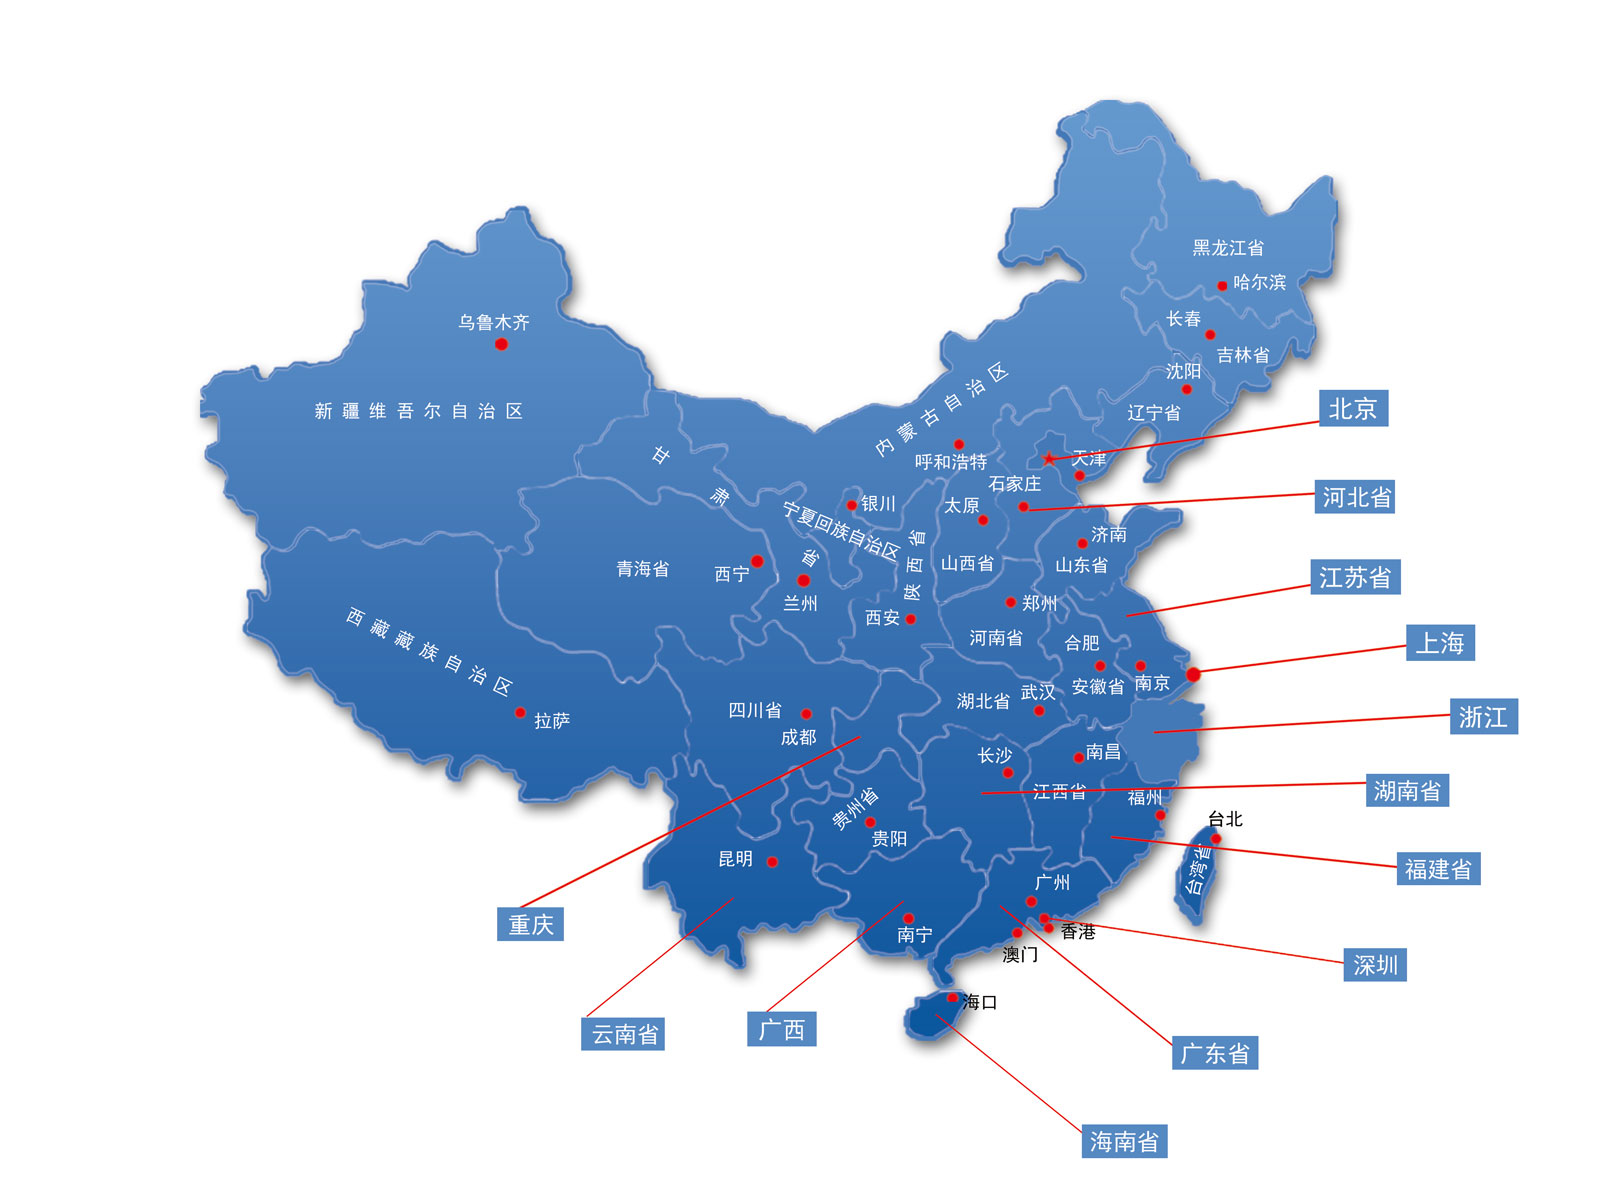 Simple map of China - PSD File Free Download